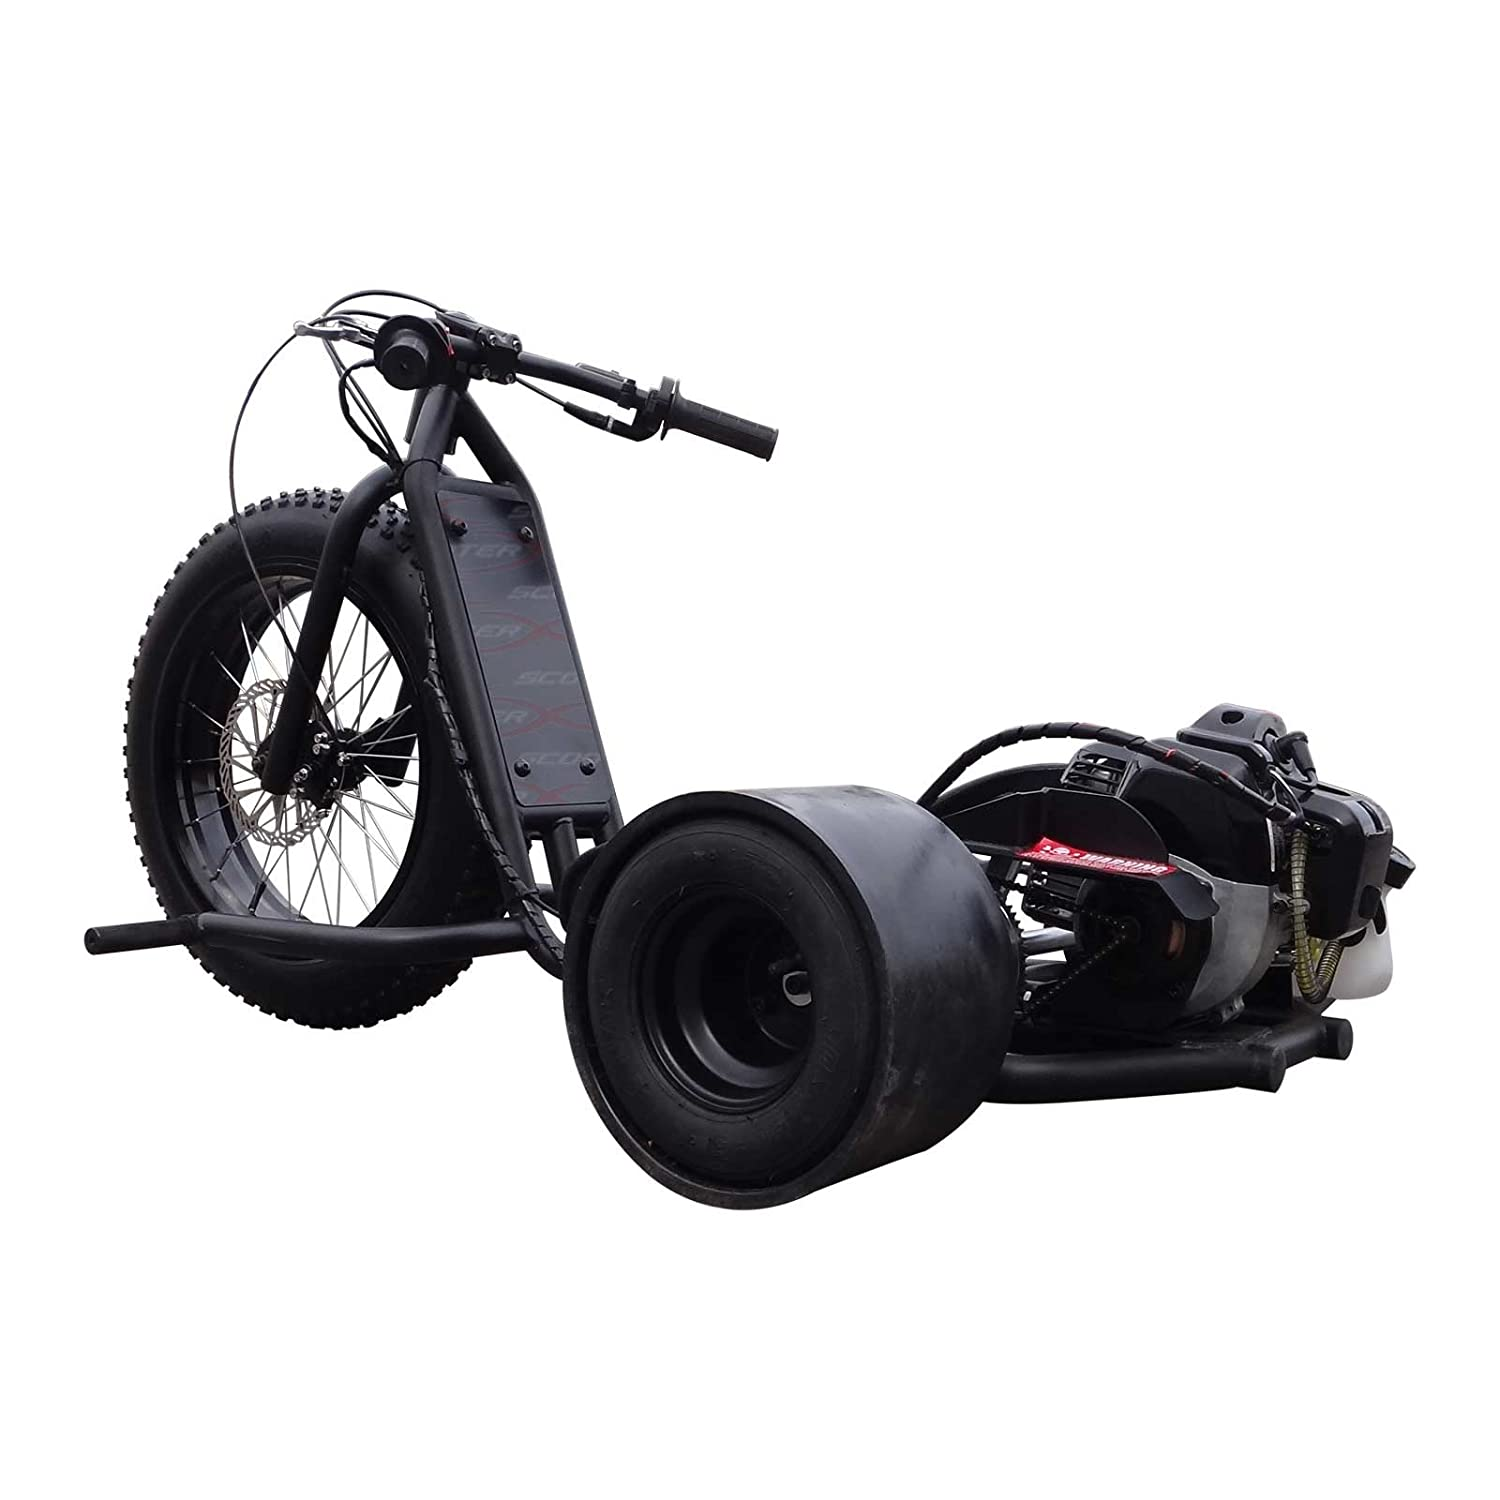 Scooter X ScooterX Drift Master 2.5hp 49cc Drift Trike Race Drifting Big Wheel Go Kart Cart 30mph! 2 tiempos acabado negro mate [534B]: Amazon.es: Coche y ...